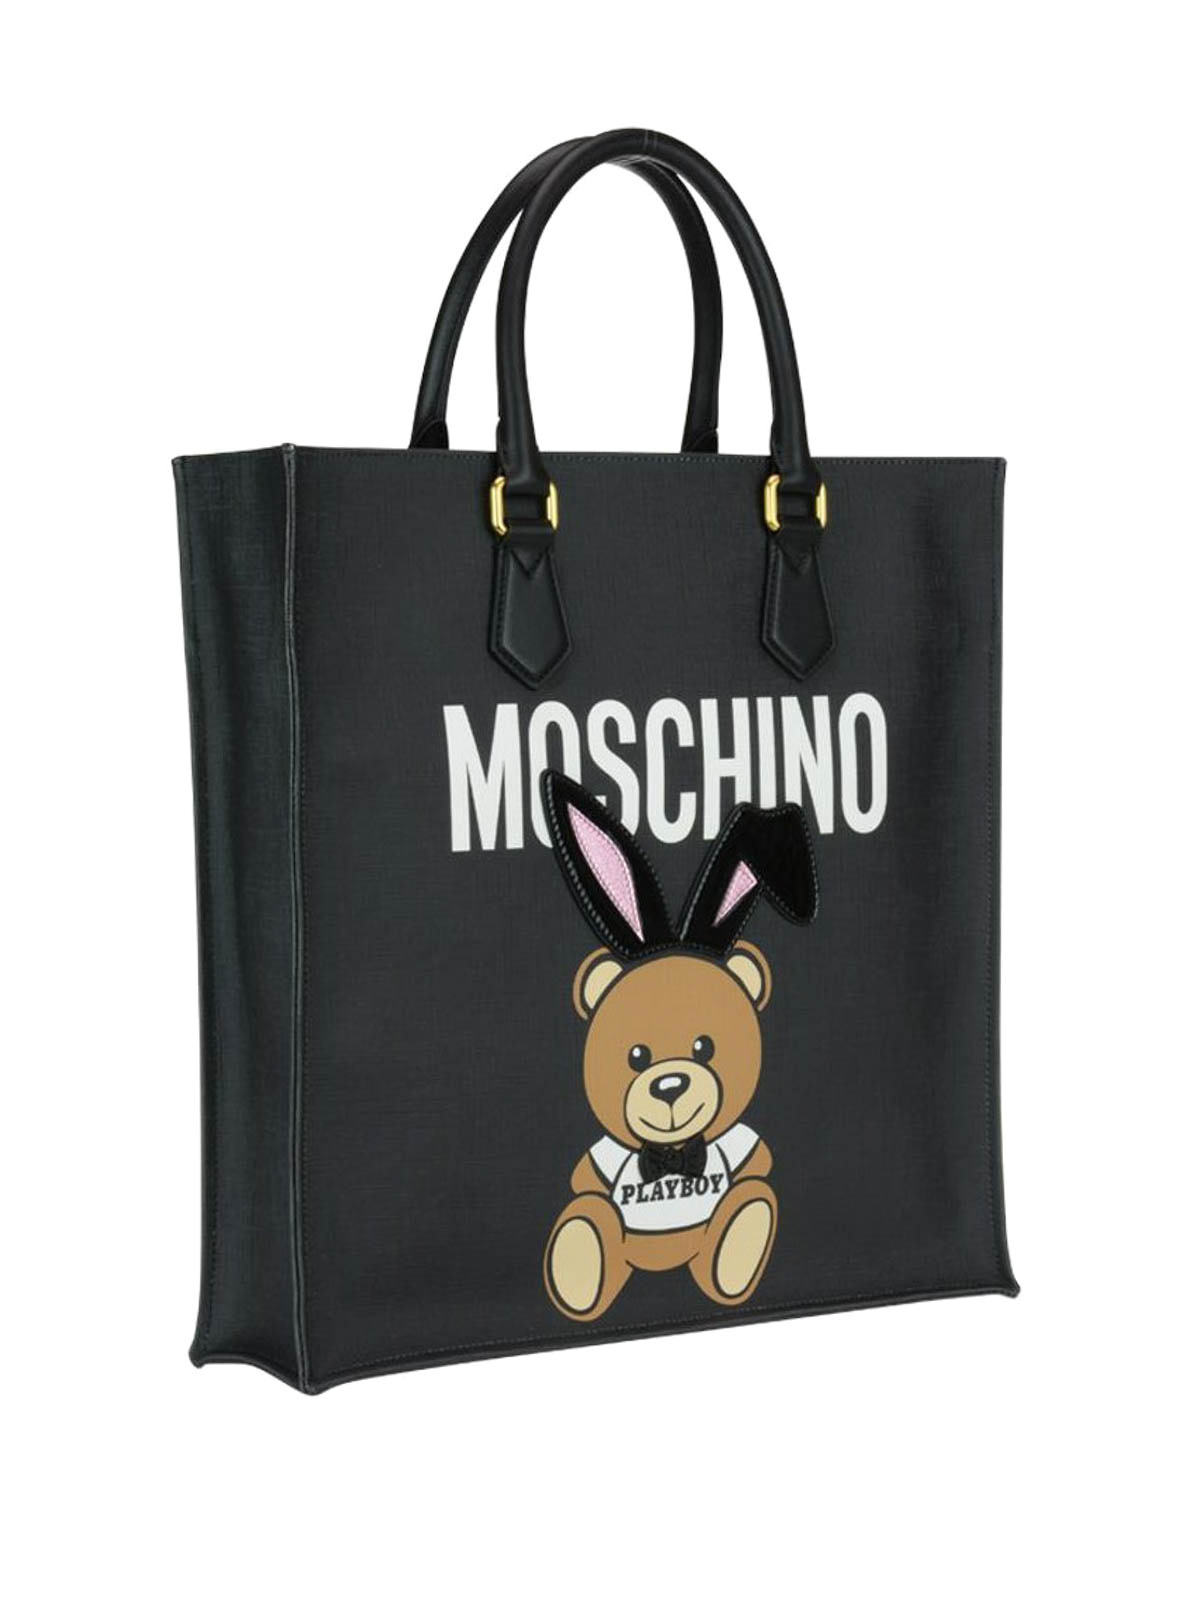 38106fd14a Moschino - Ready To Bear Playboy© black tote - totes bags - 754582101555